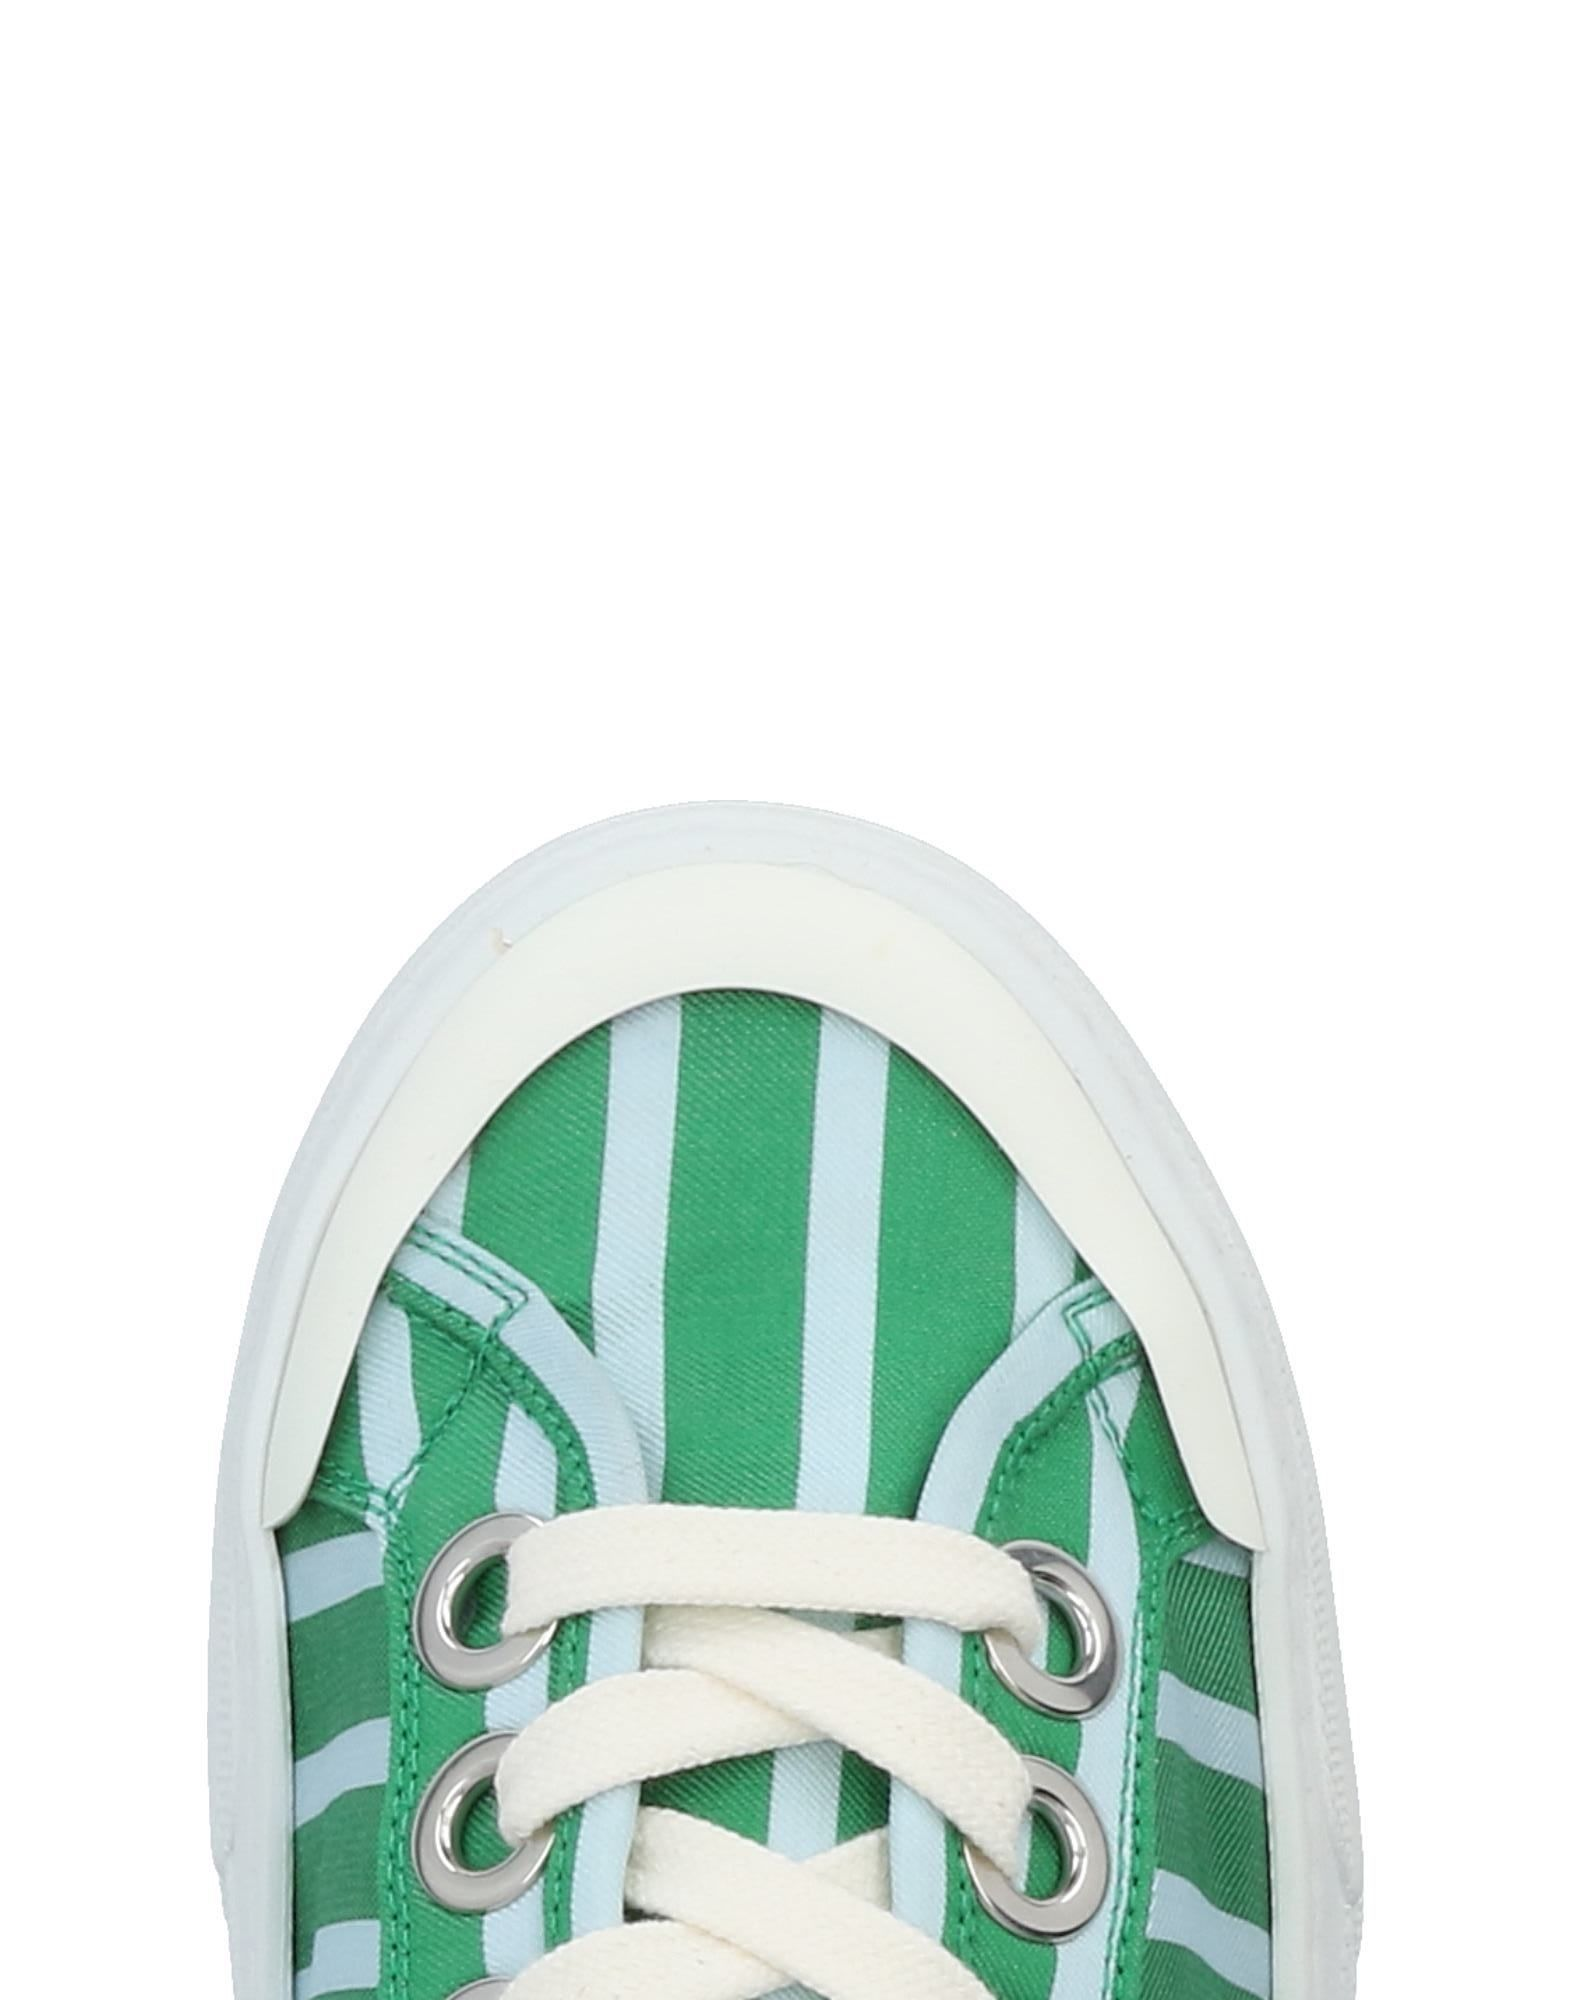 Sneakers Ports 1961 Femme - Sneakers Ports 1961 sur